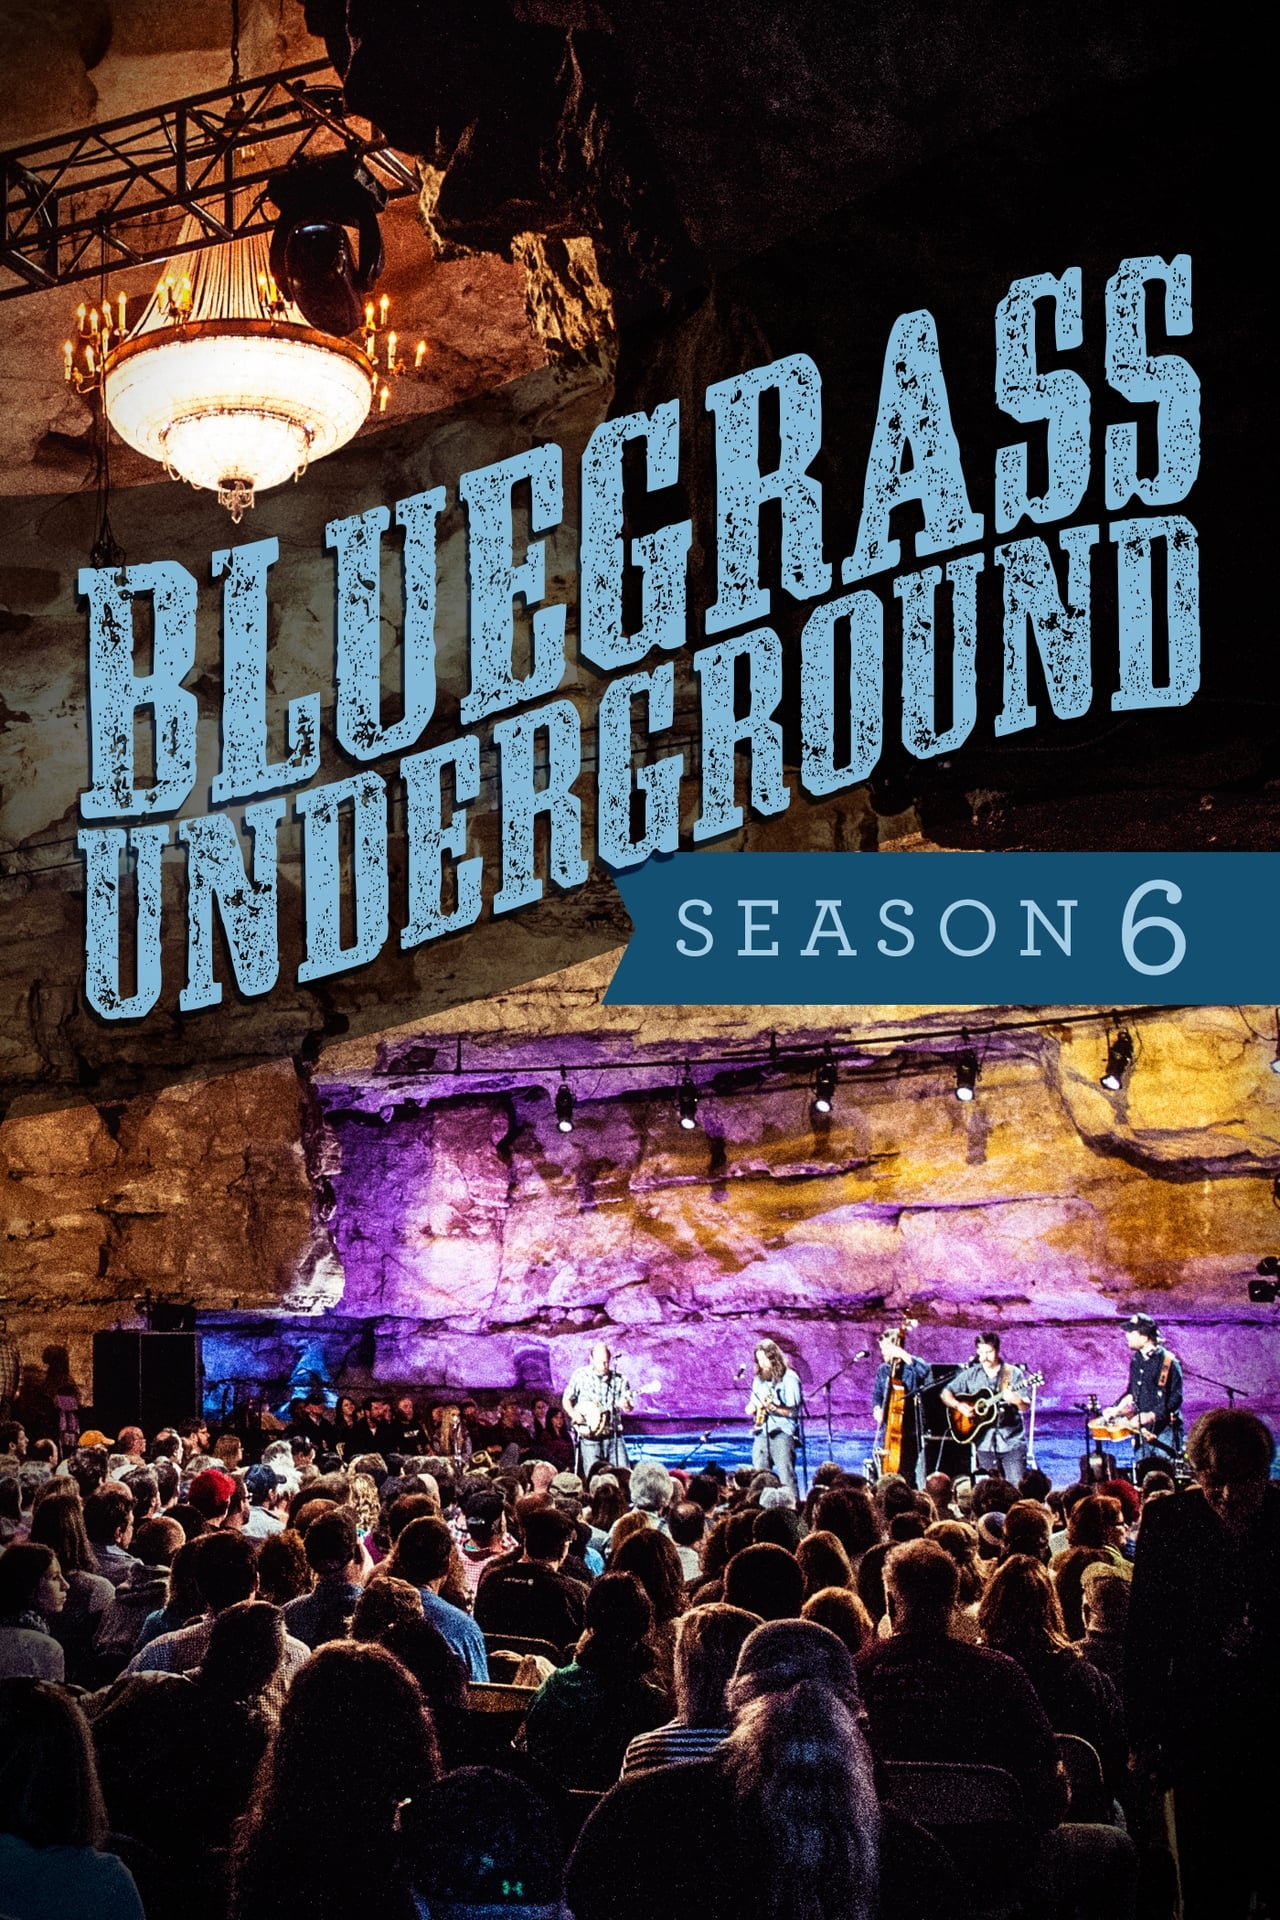 Bluegrass Underground Season 6 (2016) putlockers cafe